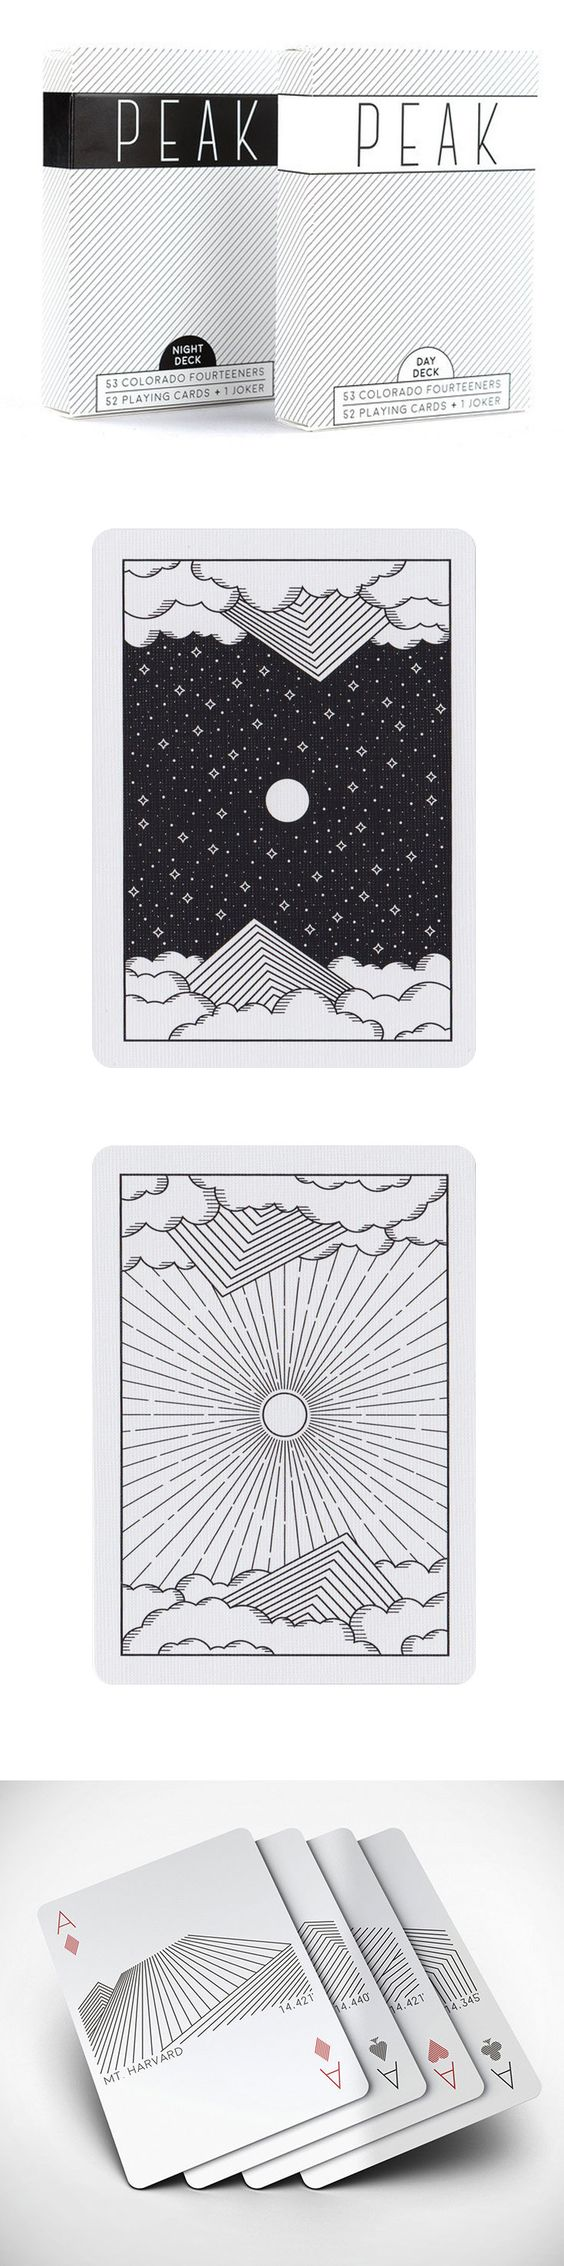 "Reach for the peak with 53 custom designed playing cards that celebrate each of Colorado's 53 ""14ers"" (mountain peaks 14,000 feet or more above sea level). From Castle Peak to Mt. Massive, all fifty two standard playing cards and one joker feature a minimalistic illustration of one of the 14ers, along with the peak's name and elevation. Also included is a joker featuring the Red Rocks. Choose from the Day Deck or the Night Deck and start planning your next adventure. #colossal"